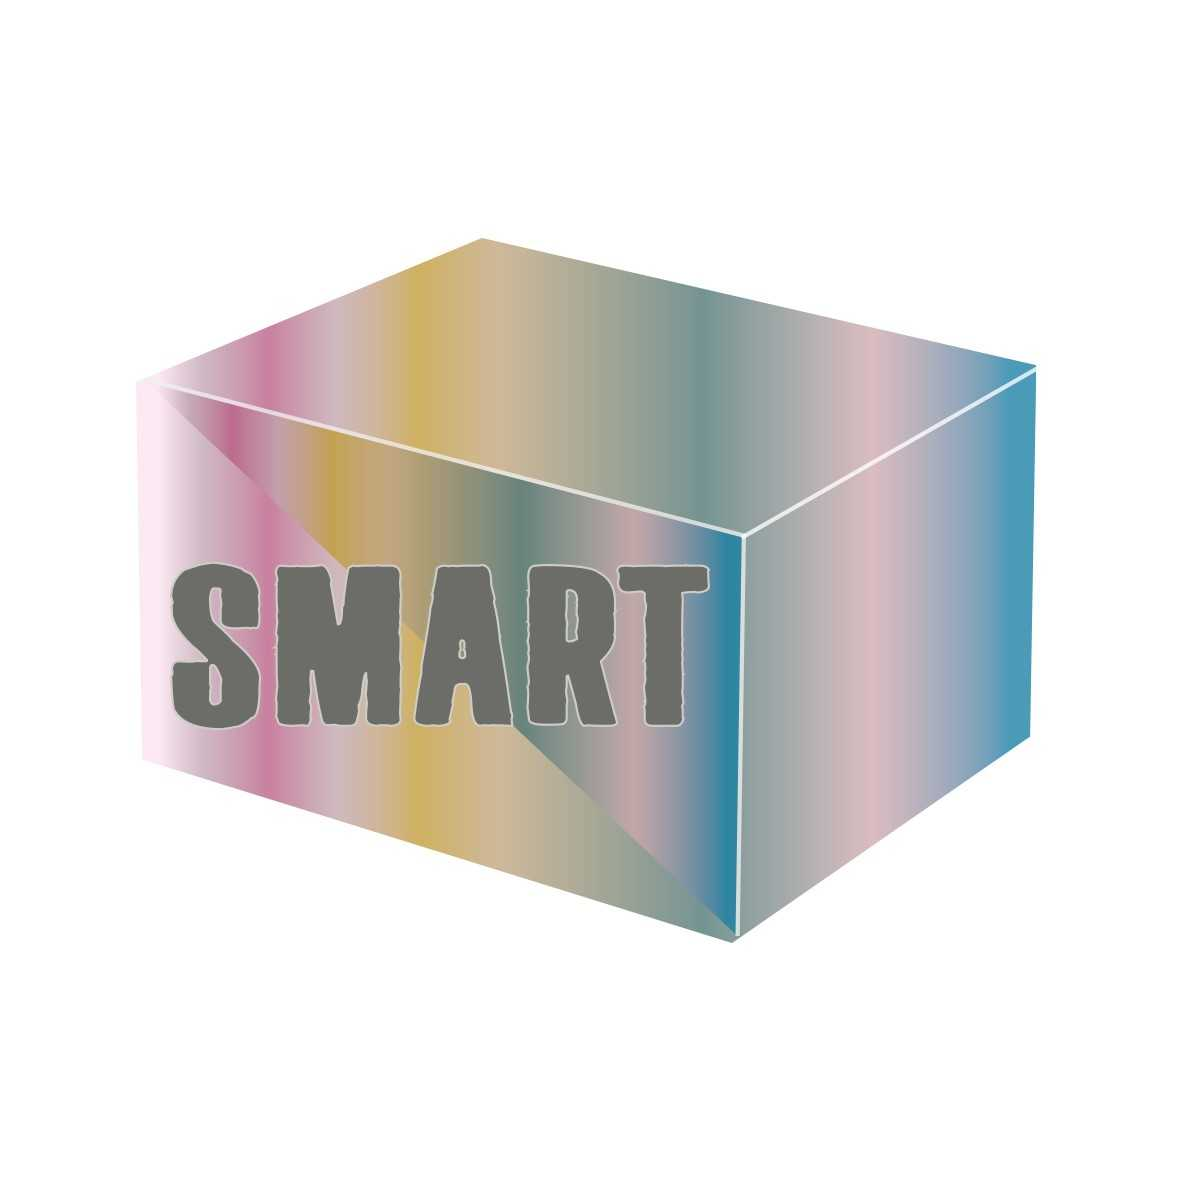 How Smart CCTV is made Smart: A Story about the Smartboxing of Image